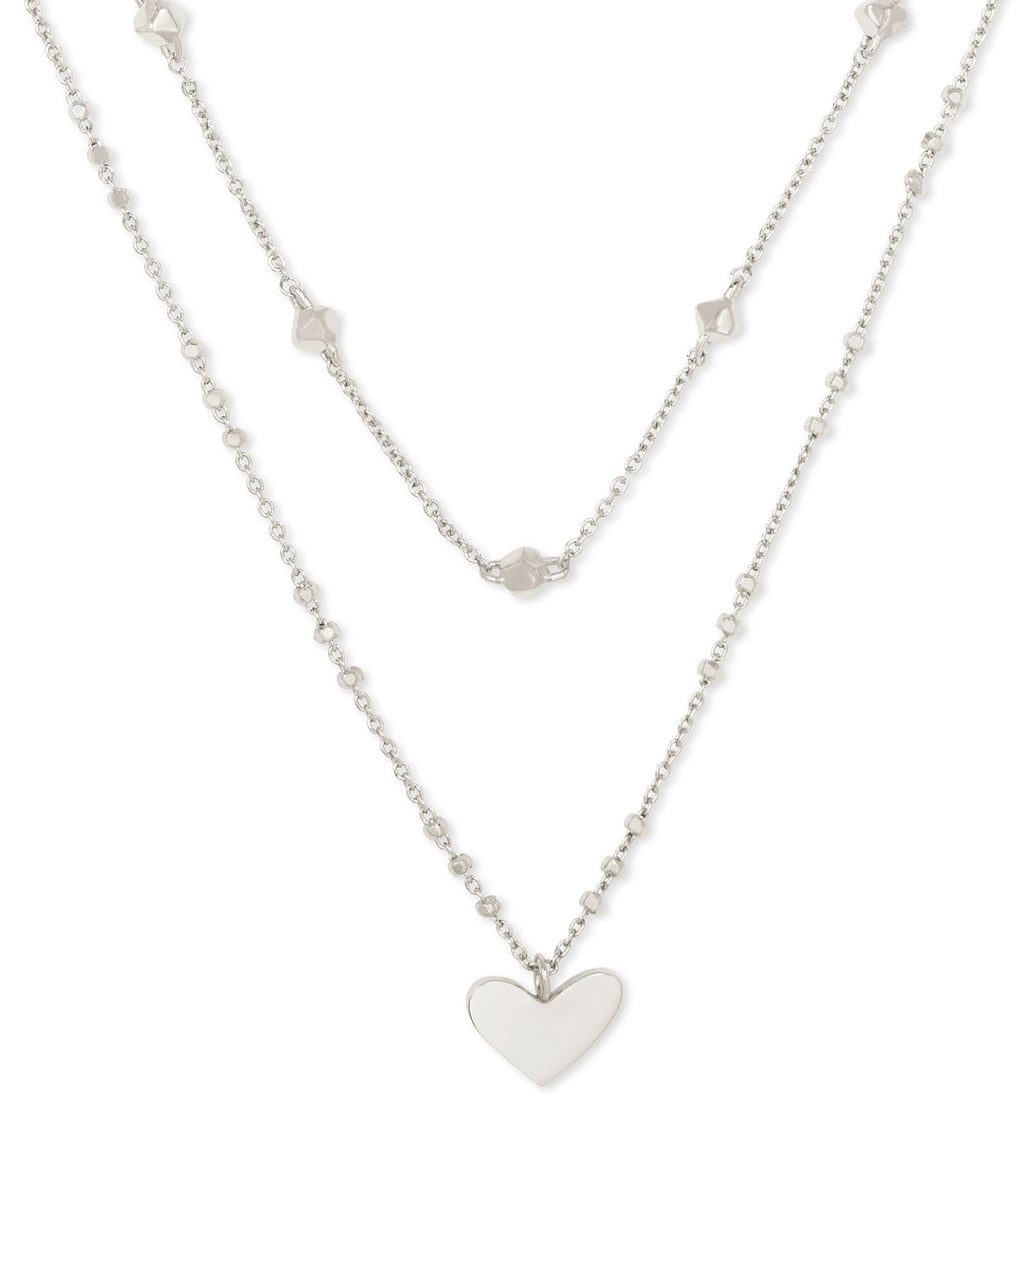 Ari Heart Multi Strand Necklace in Silver Metal